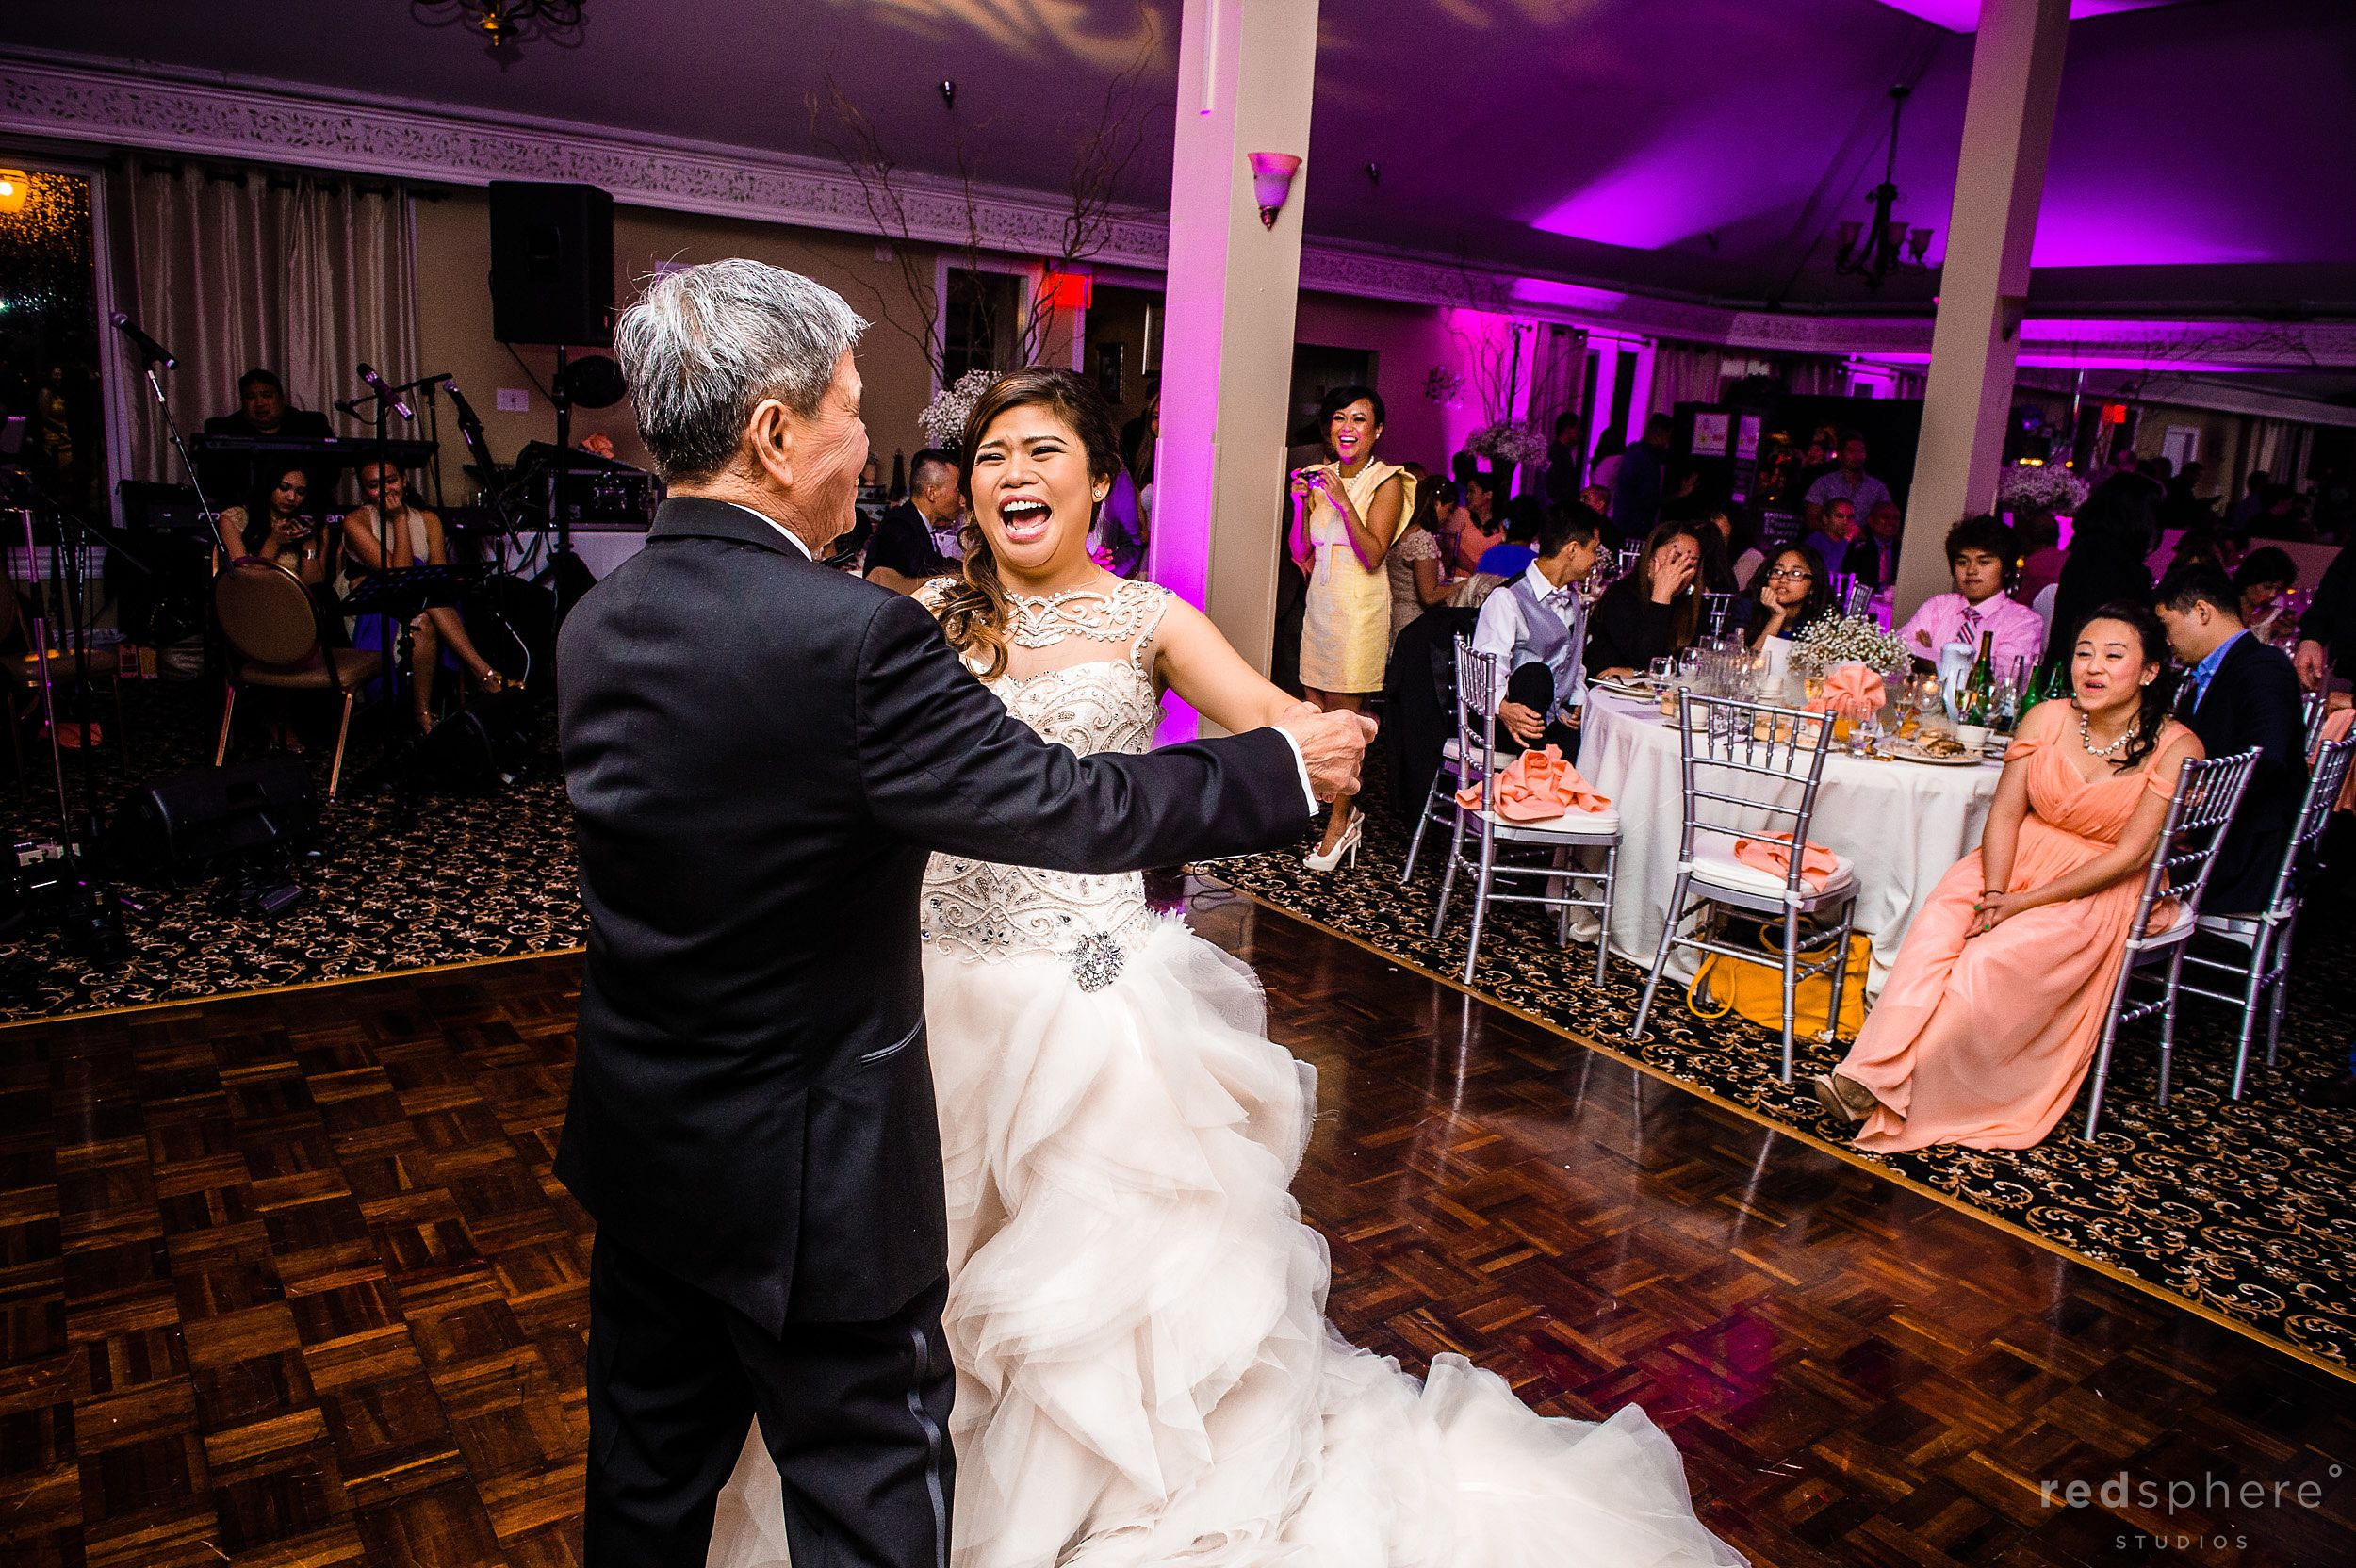 Bride Shares a Dance with Her Dad at Wedding Reception